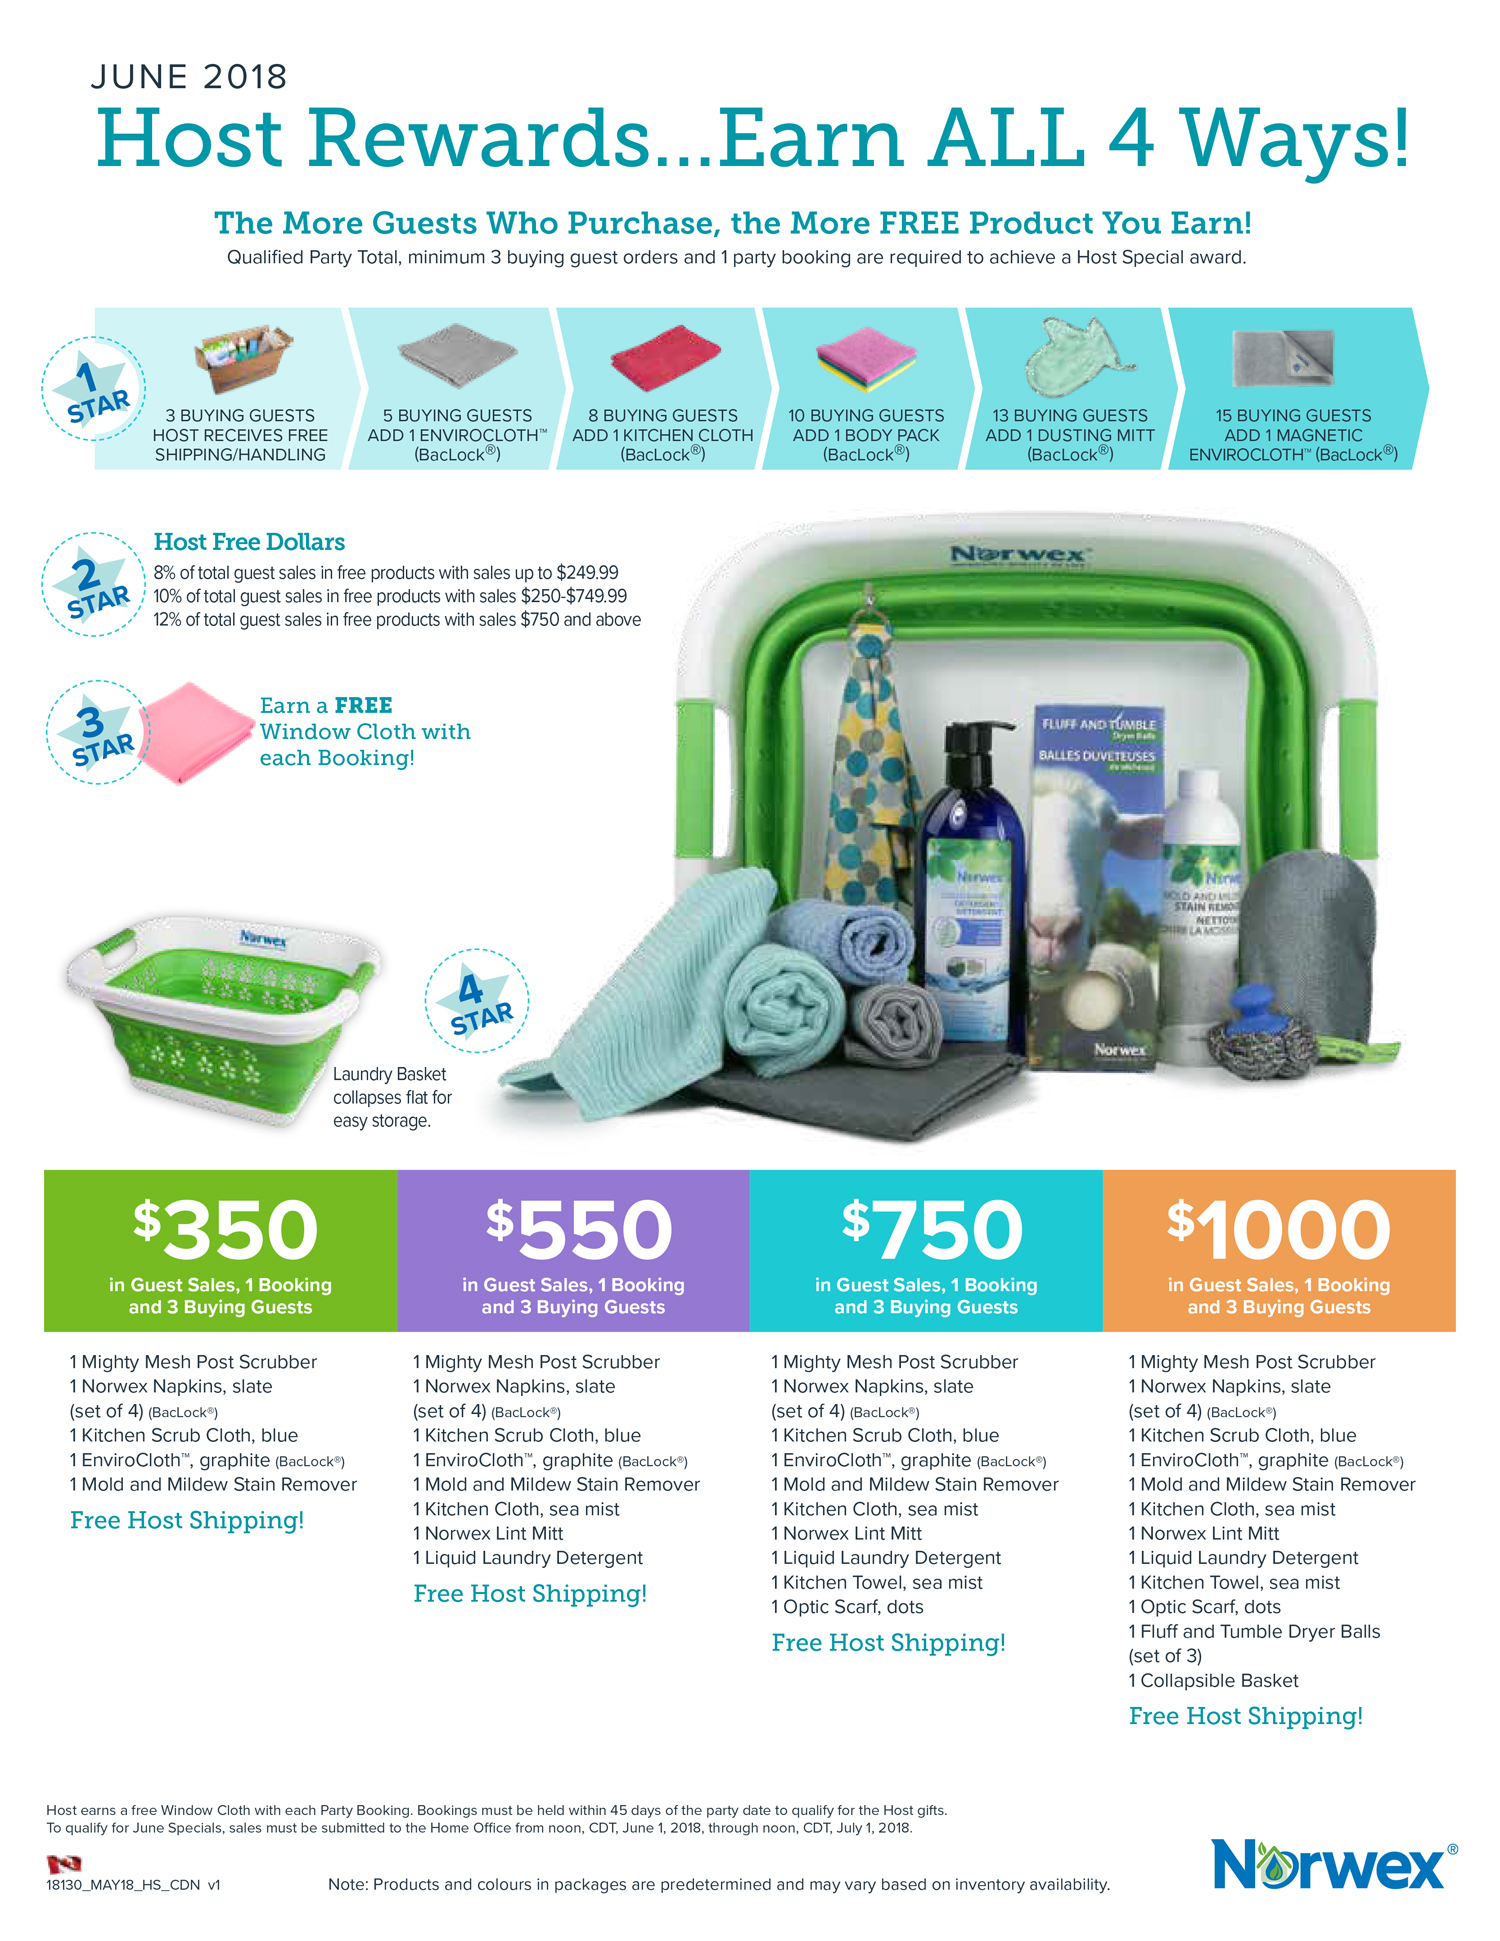 Norwex Host Rewards June 2018